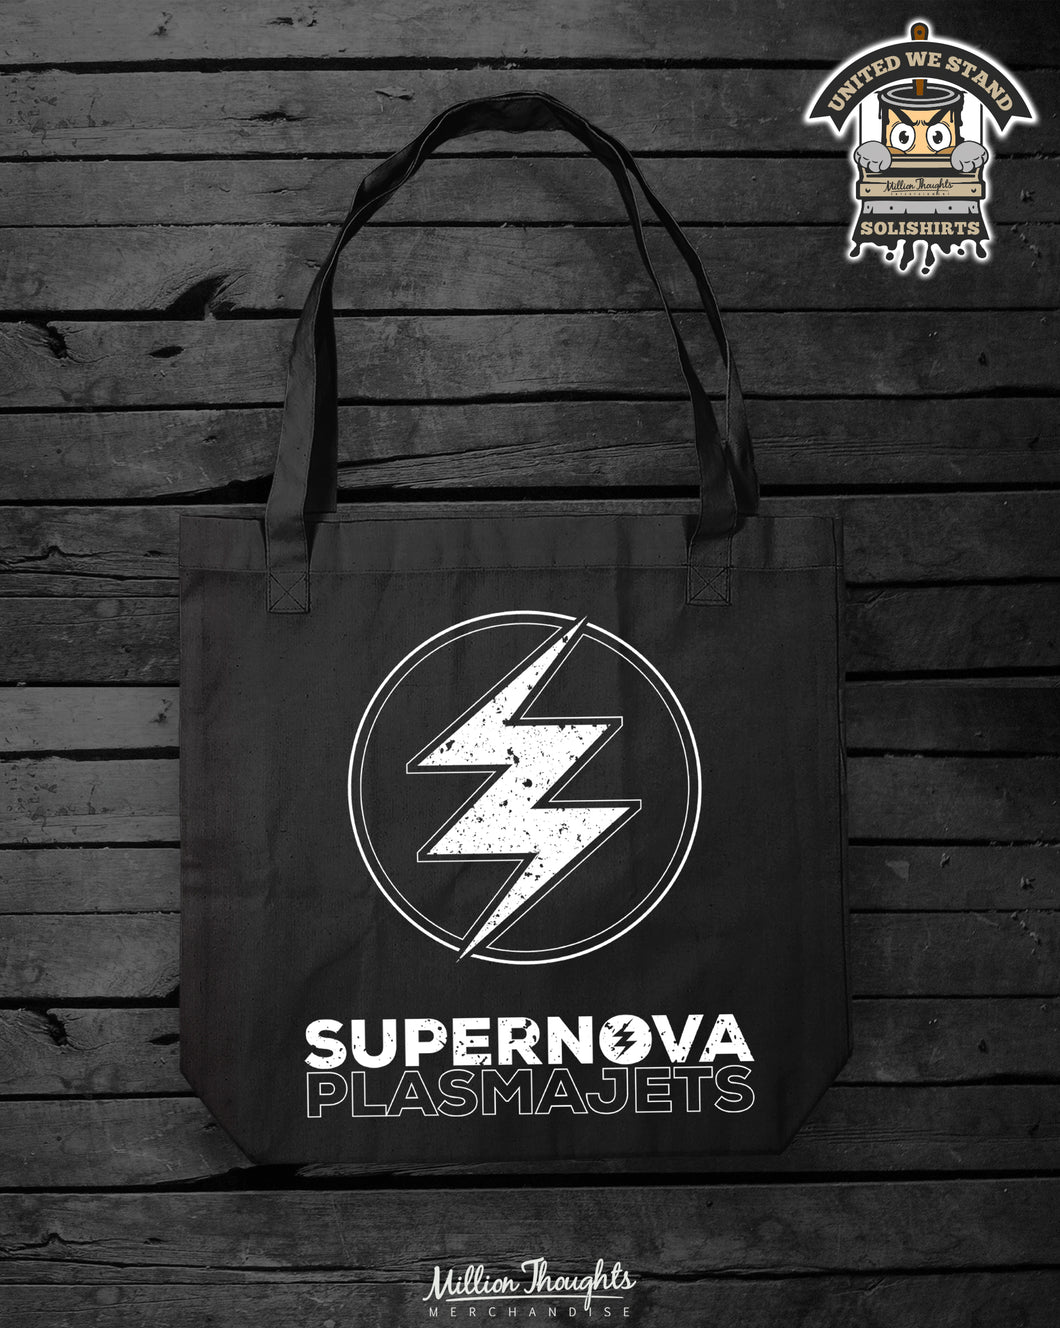 Supernova Plasmajets - BAG